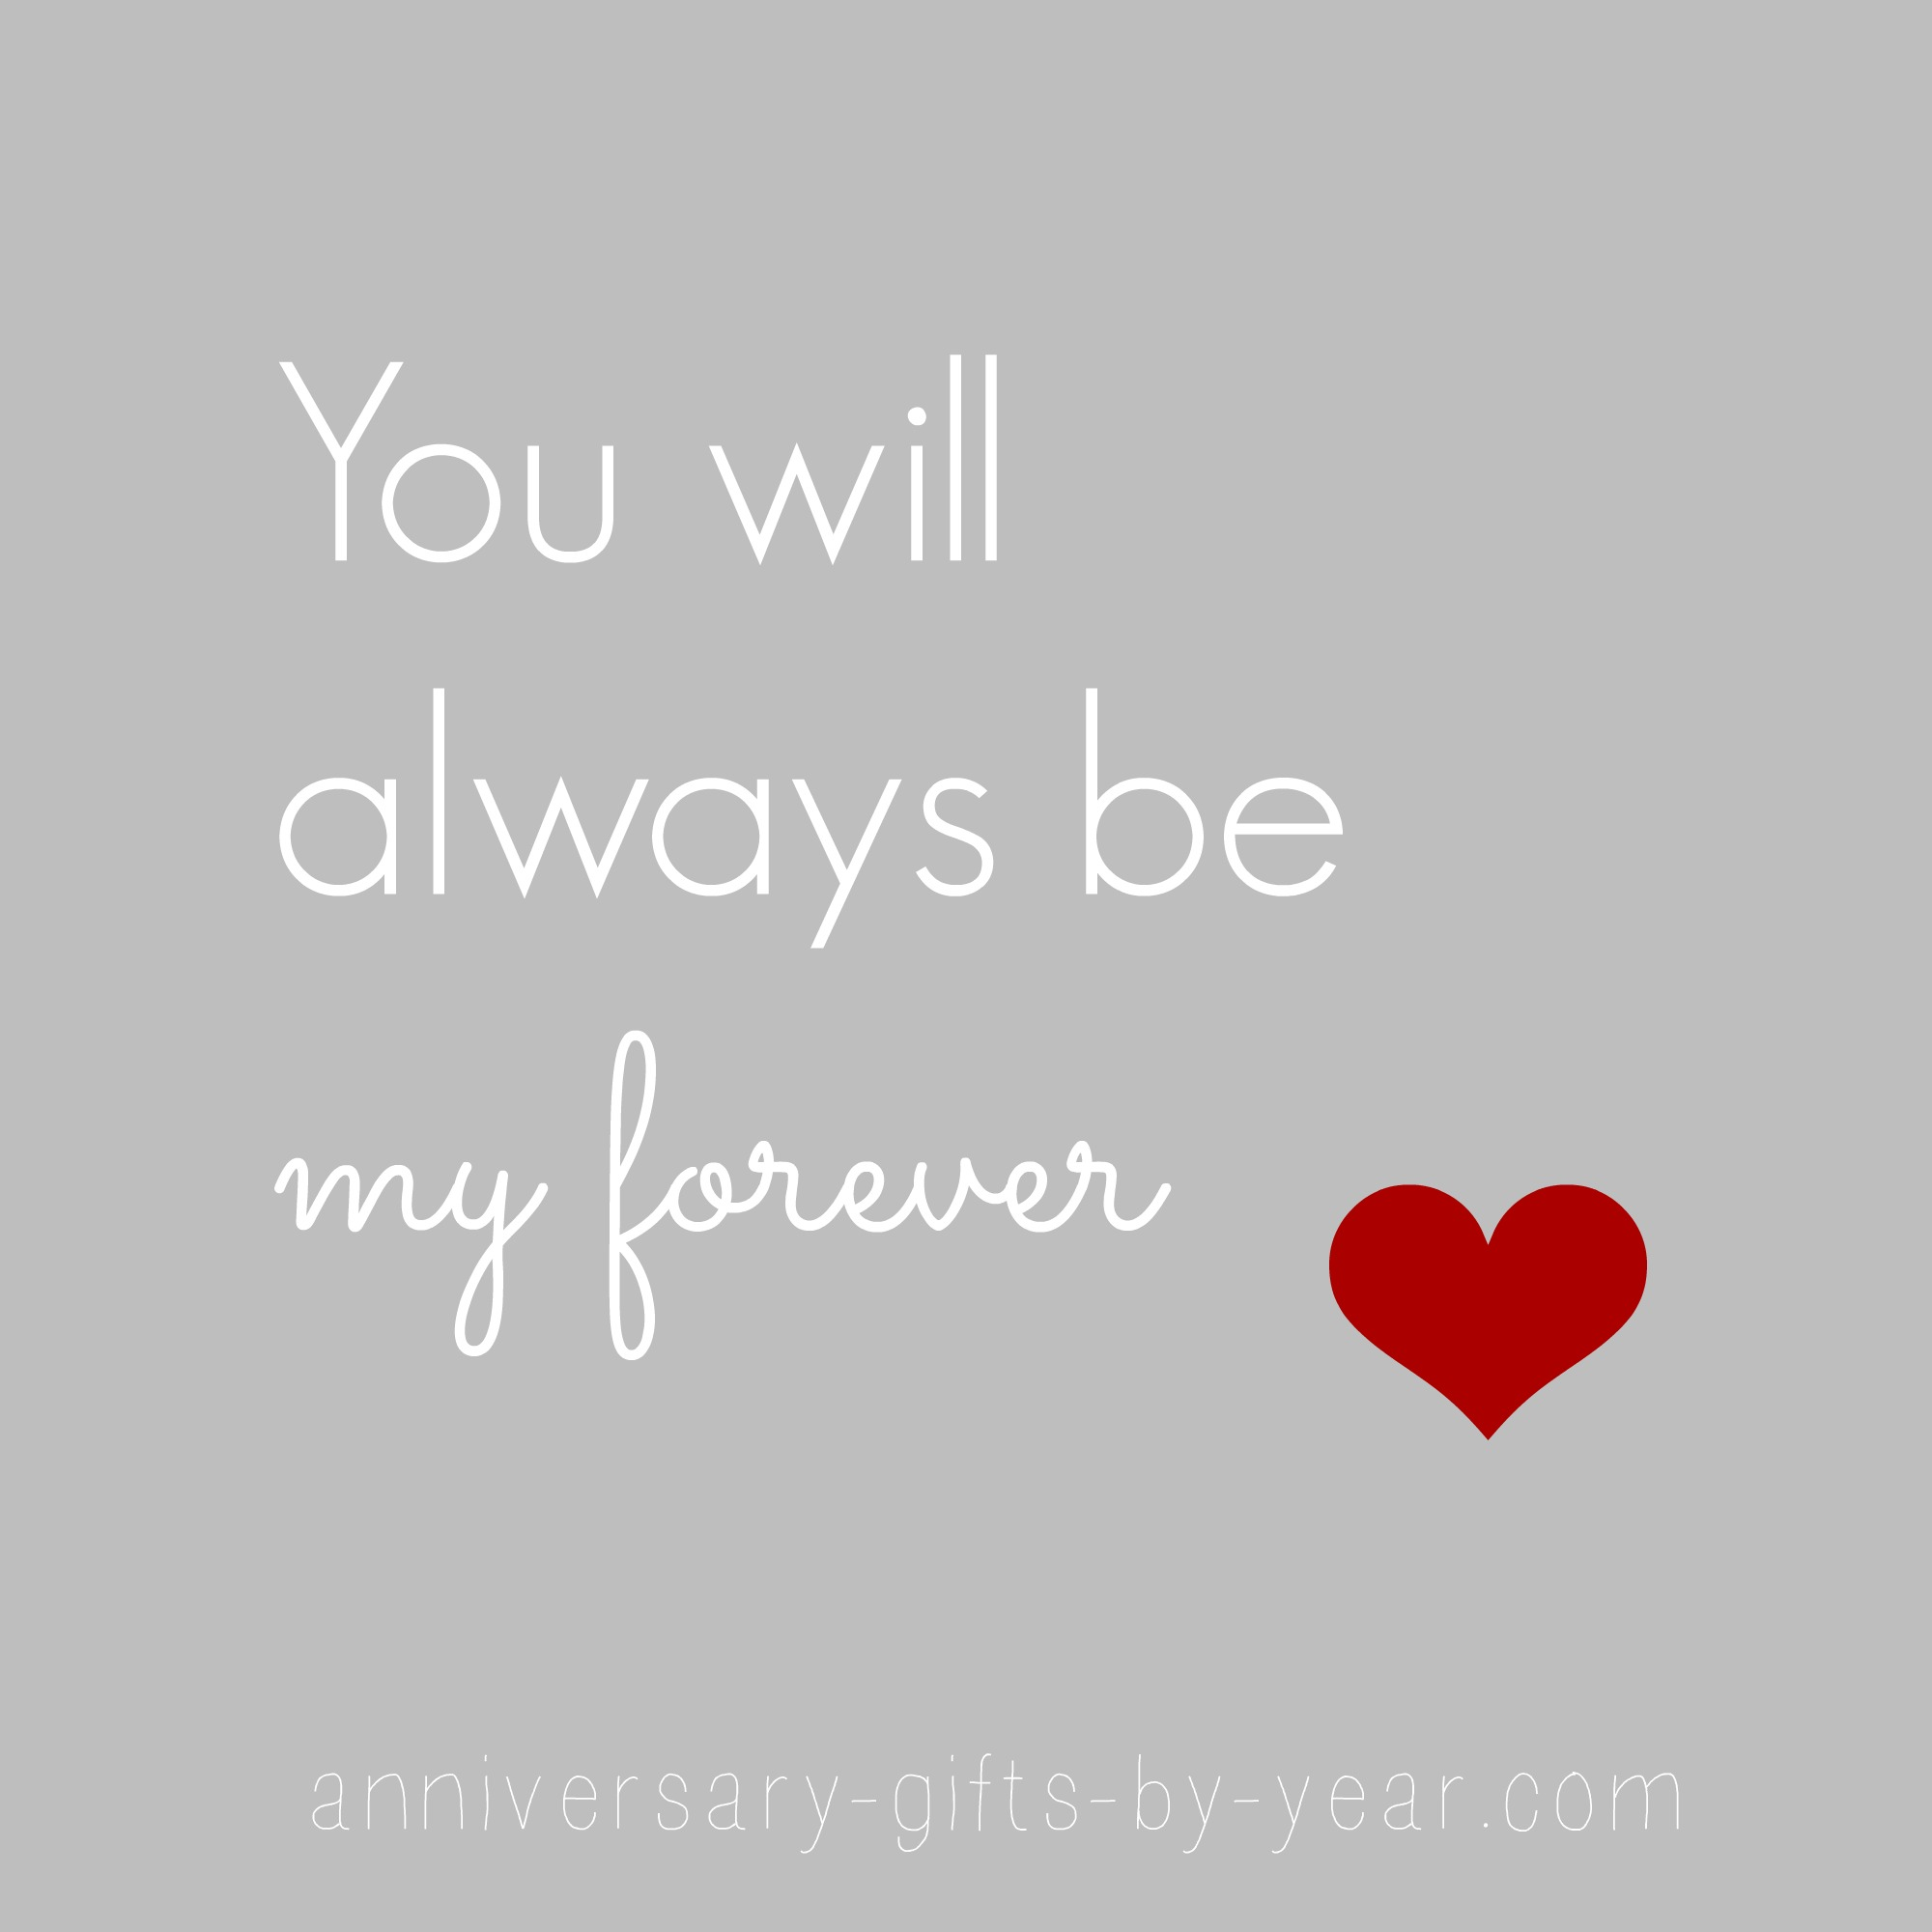 anniversary quote - you will always be my forever